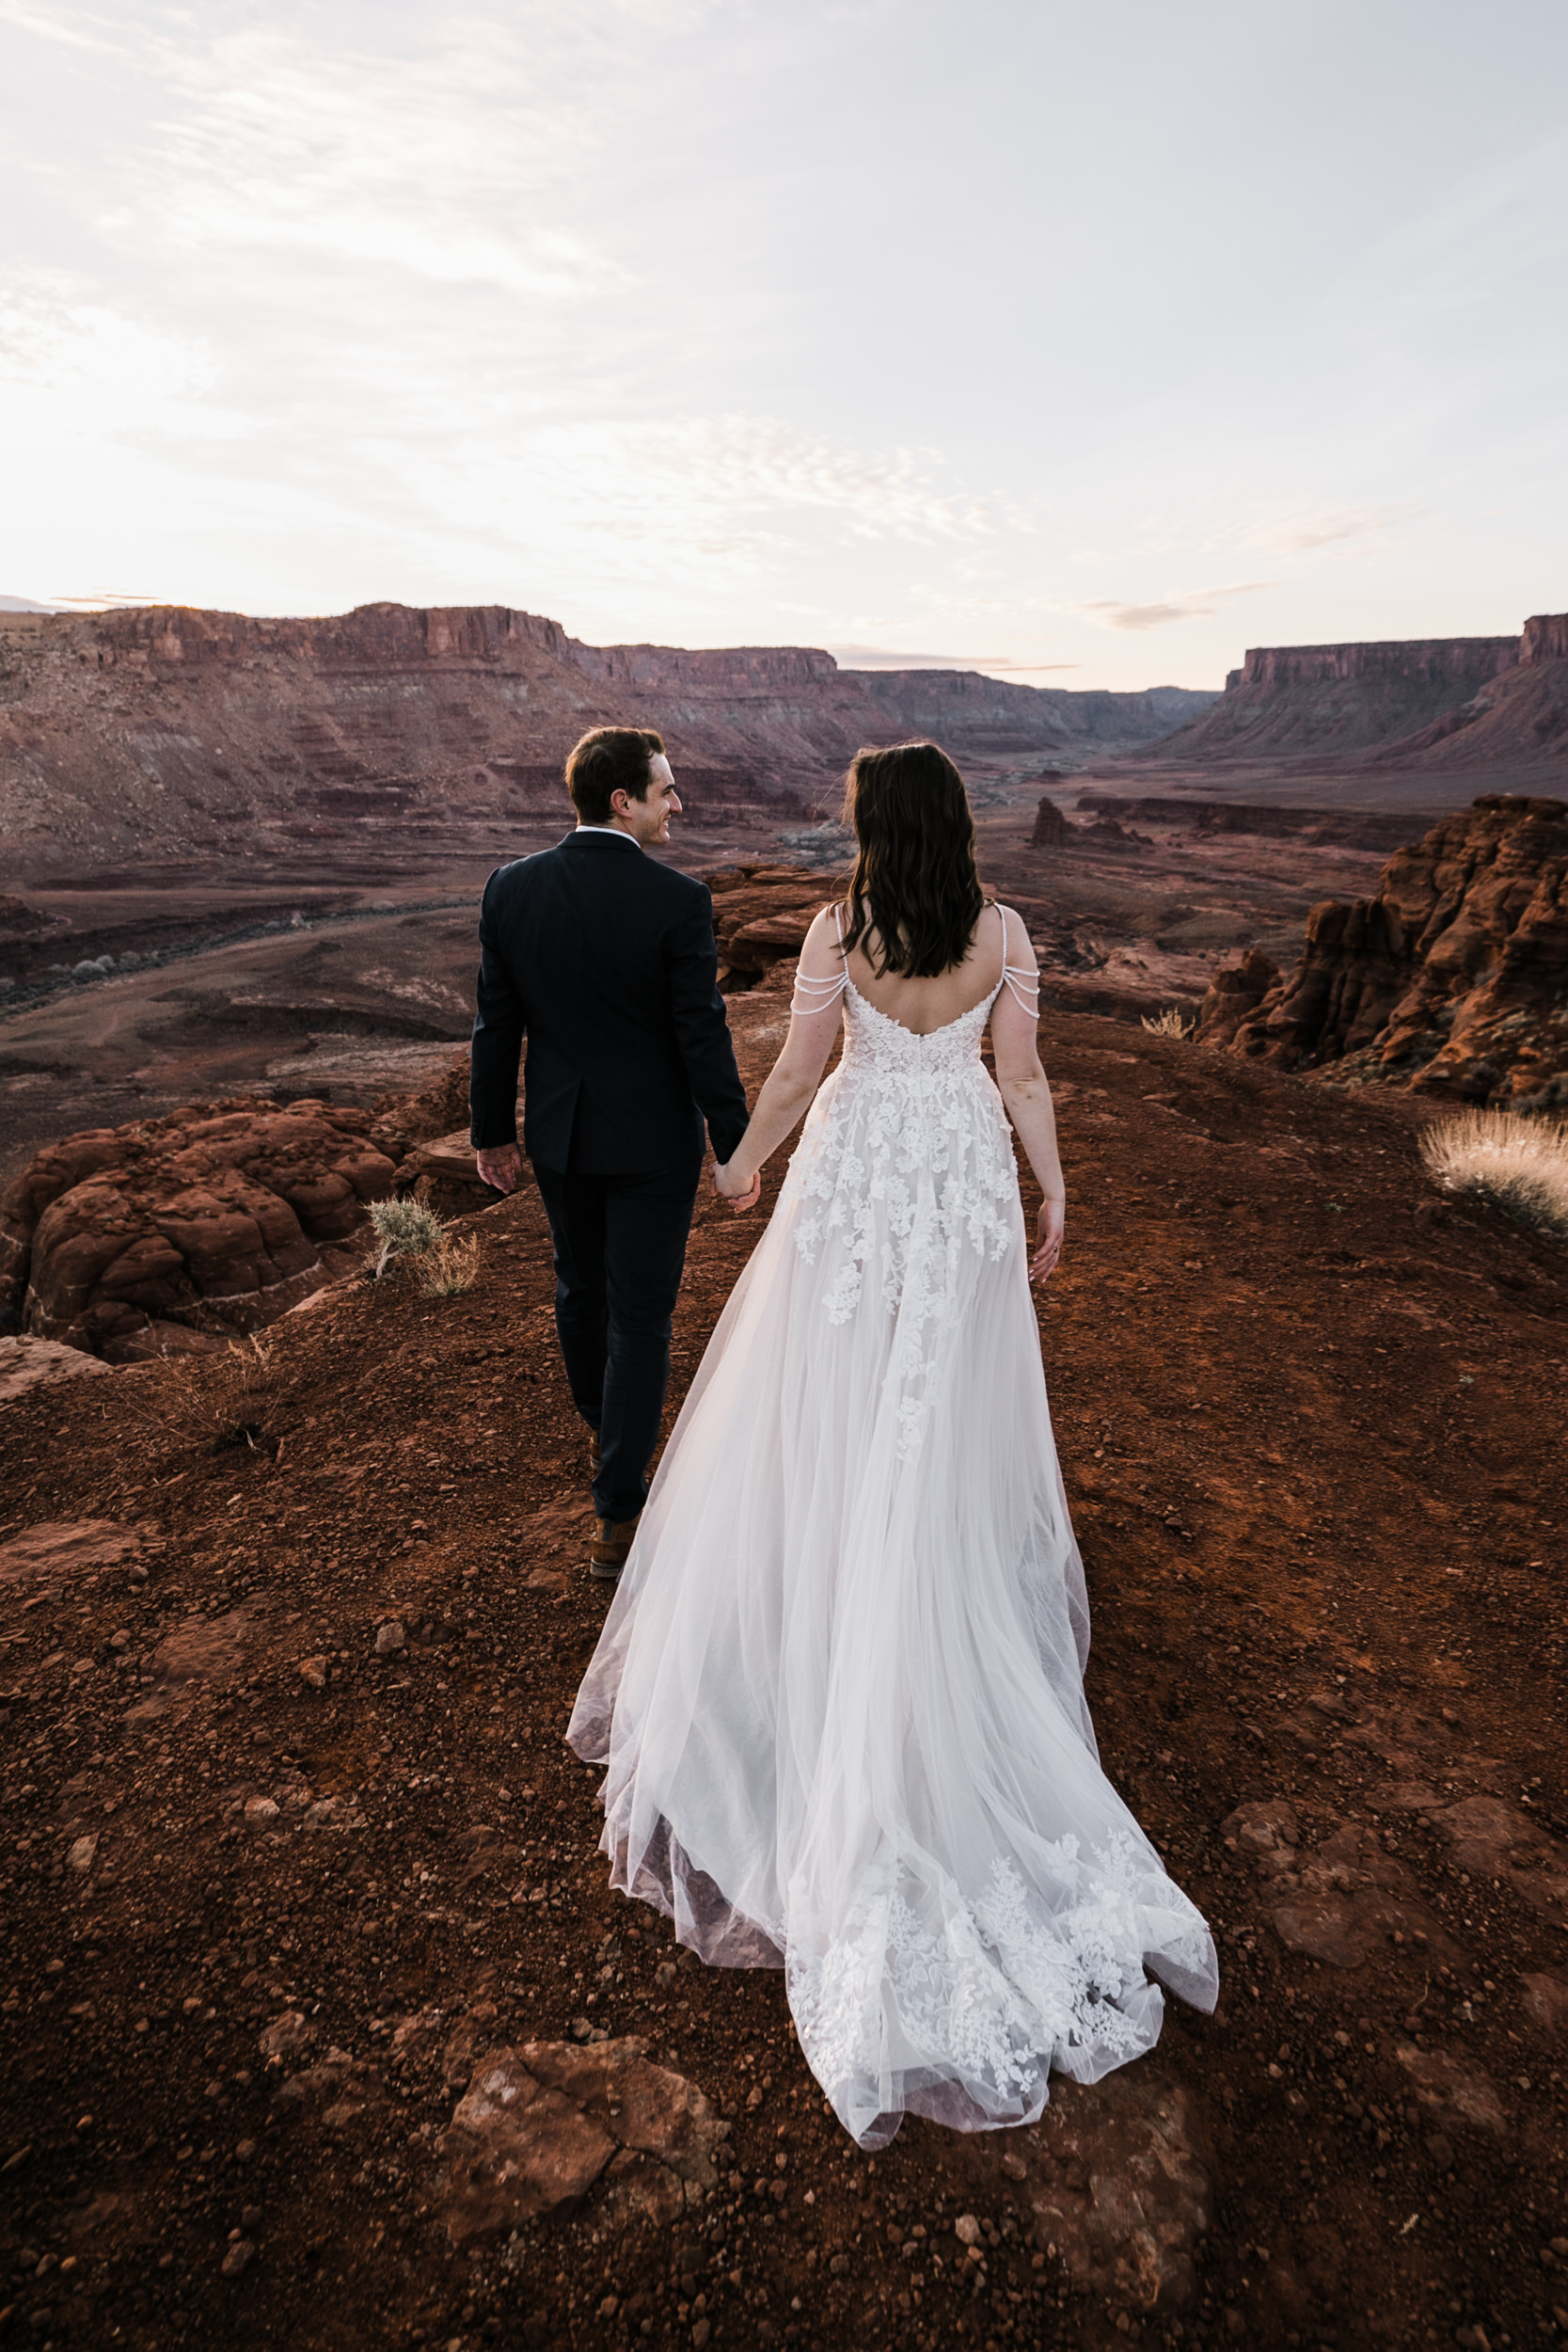 Claire's wedding dress was amazing and fit right in to the desert. Our hiking brides are so much fun!